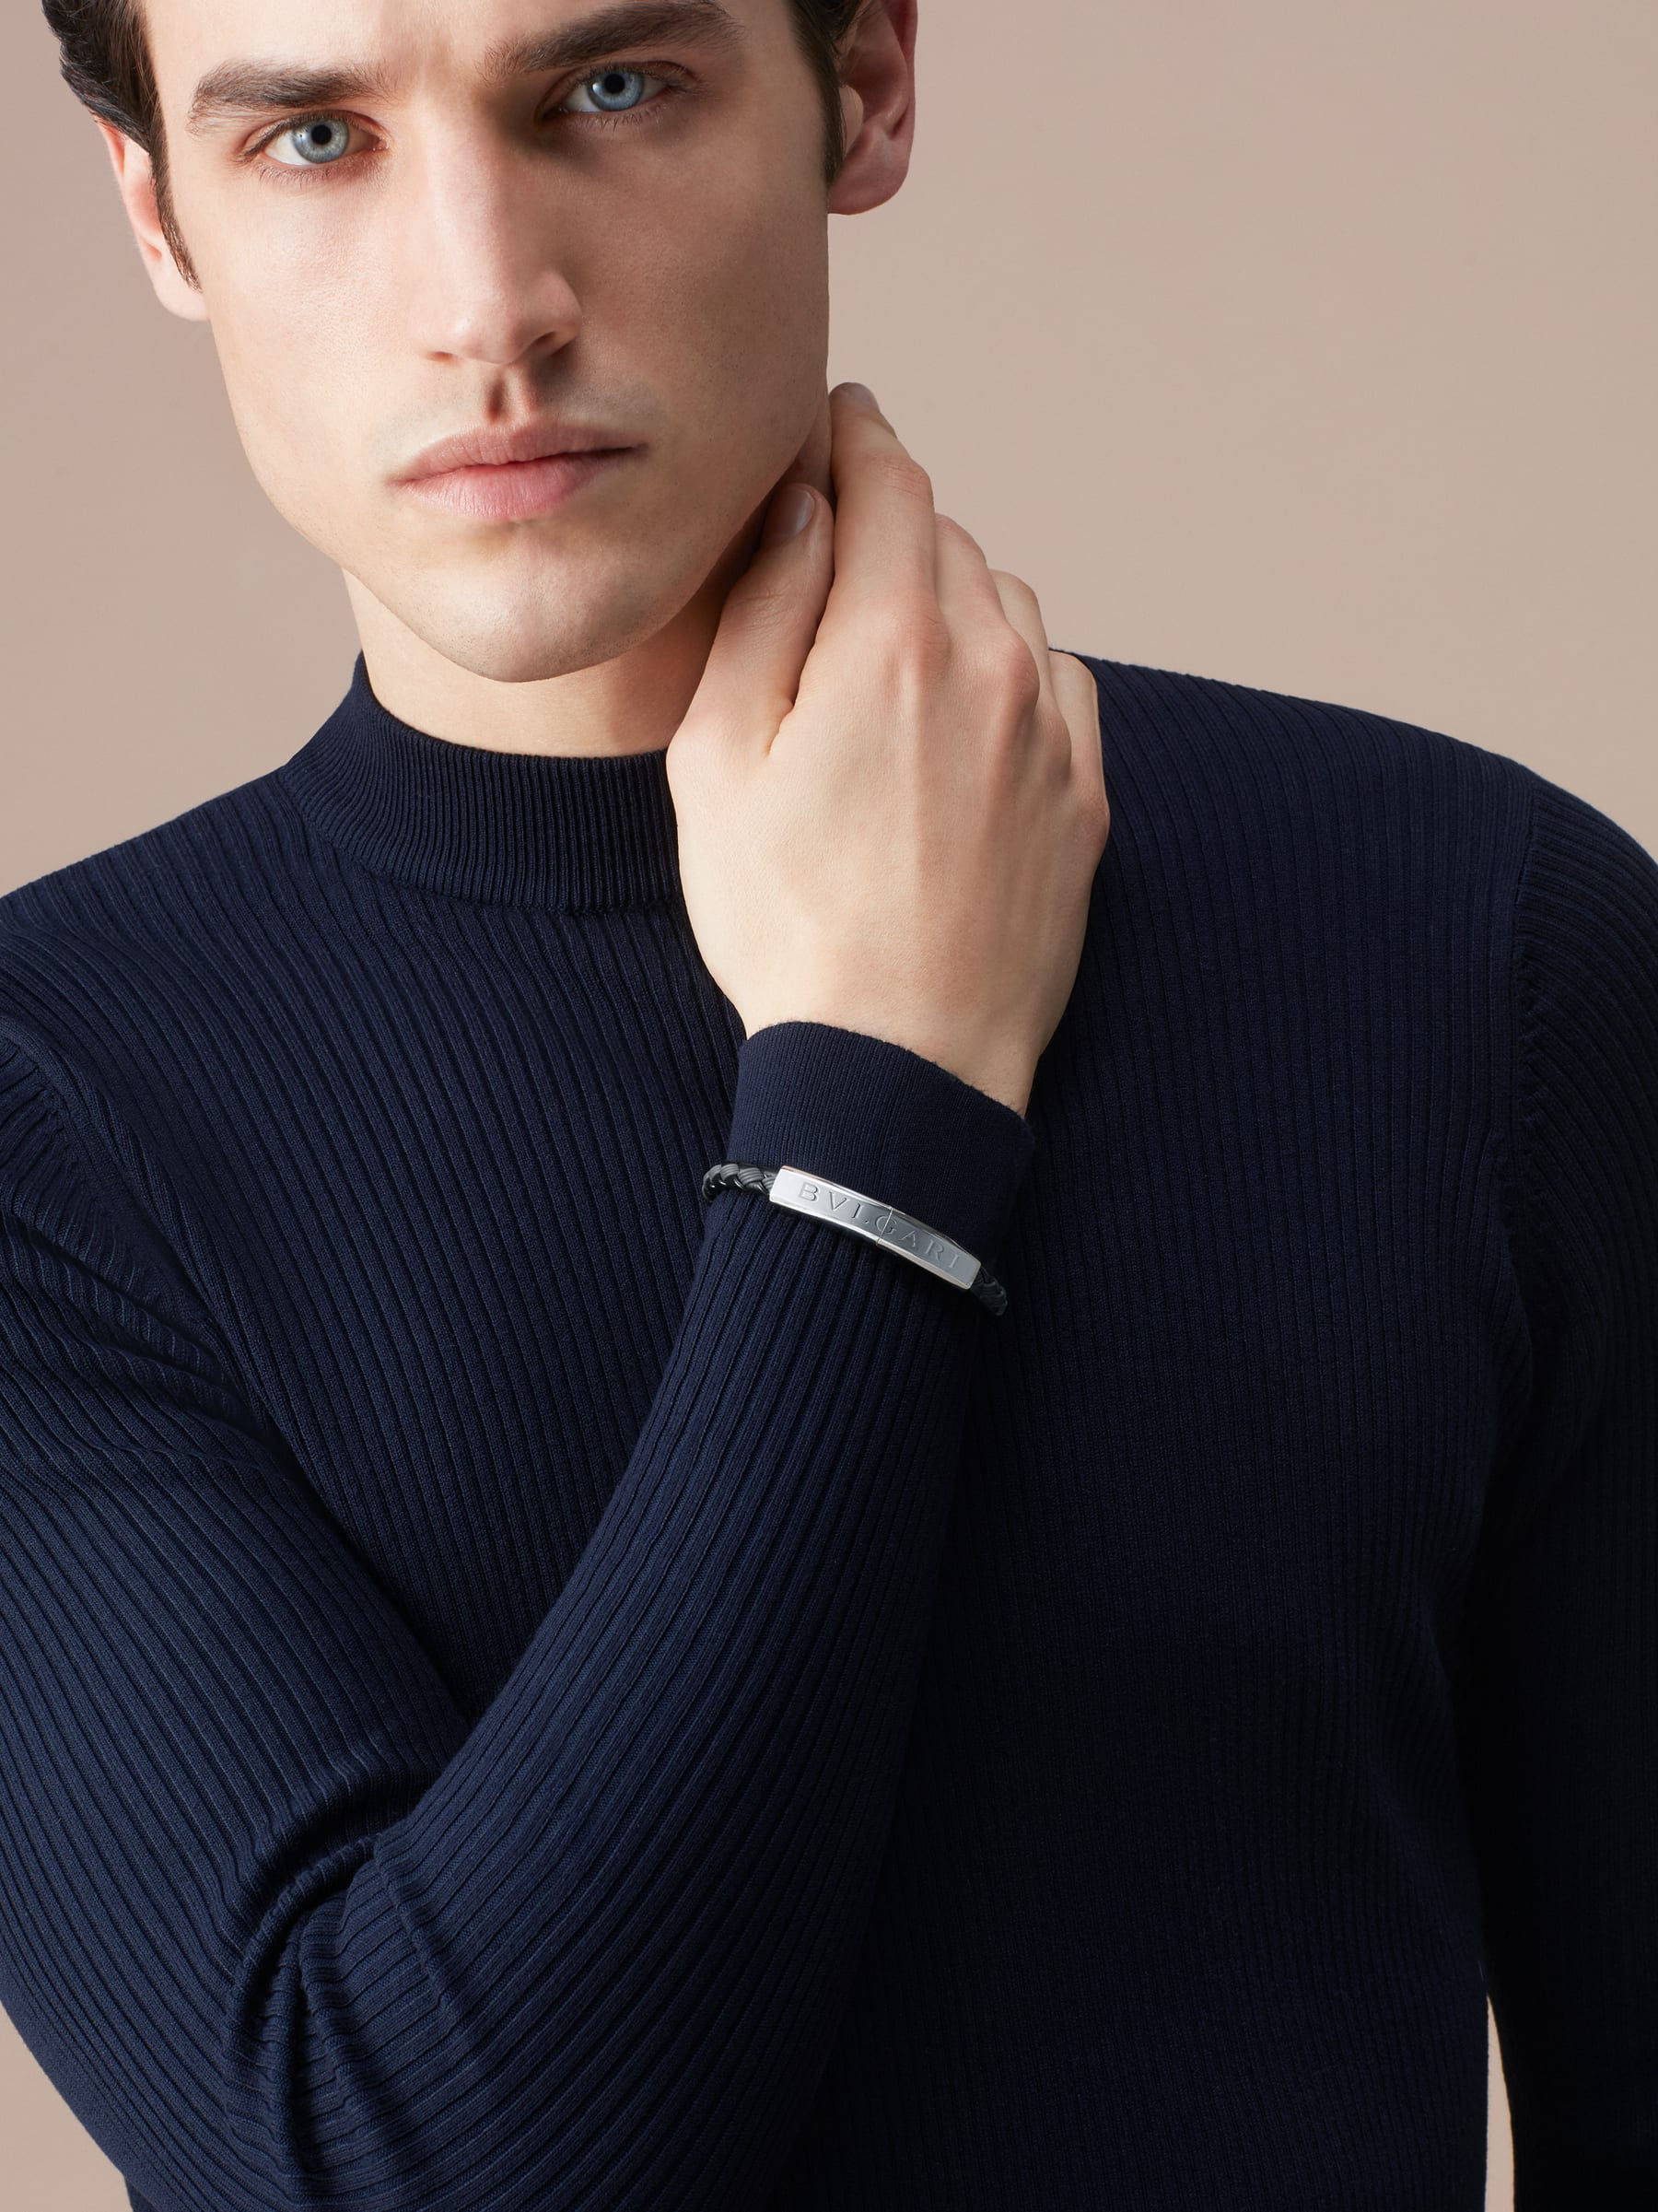 """""""BVLGARI BVLGARI"""" bracelet in black calf leather and black rubber with a palladium plated brass plate closure with Bvlgari logo. LogoPlate-CLR-B image 2"""